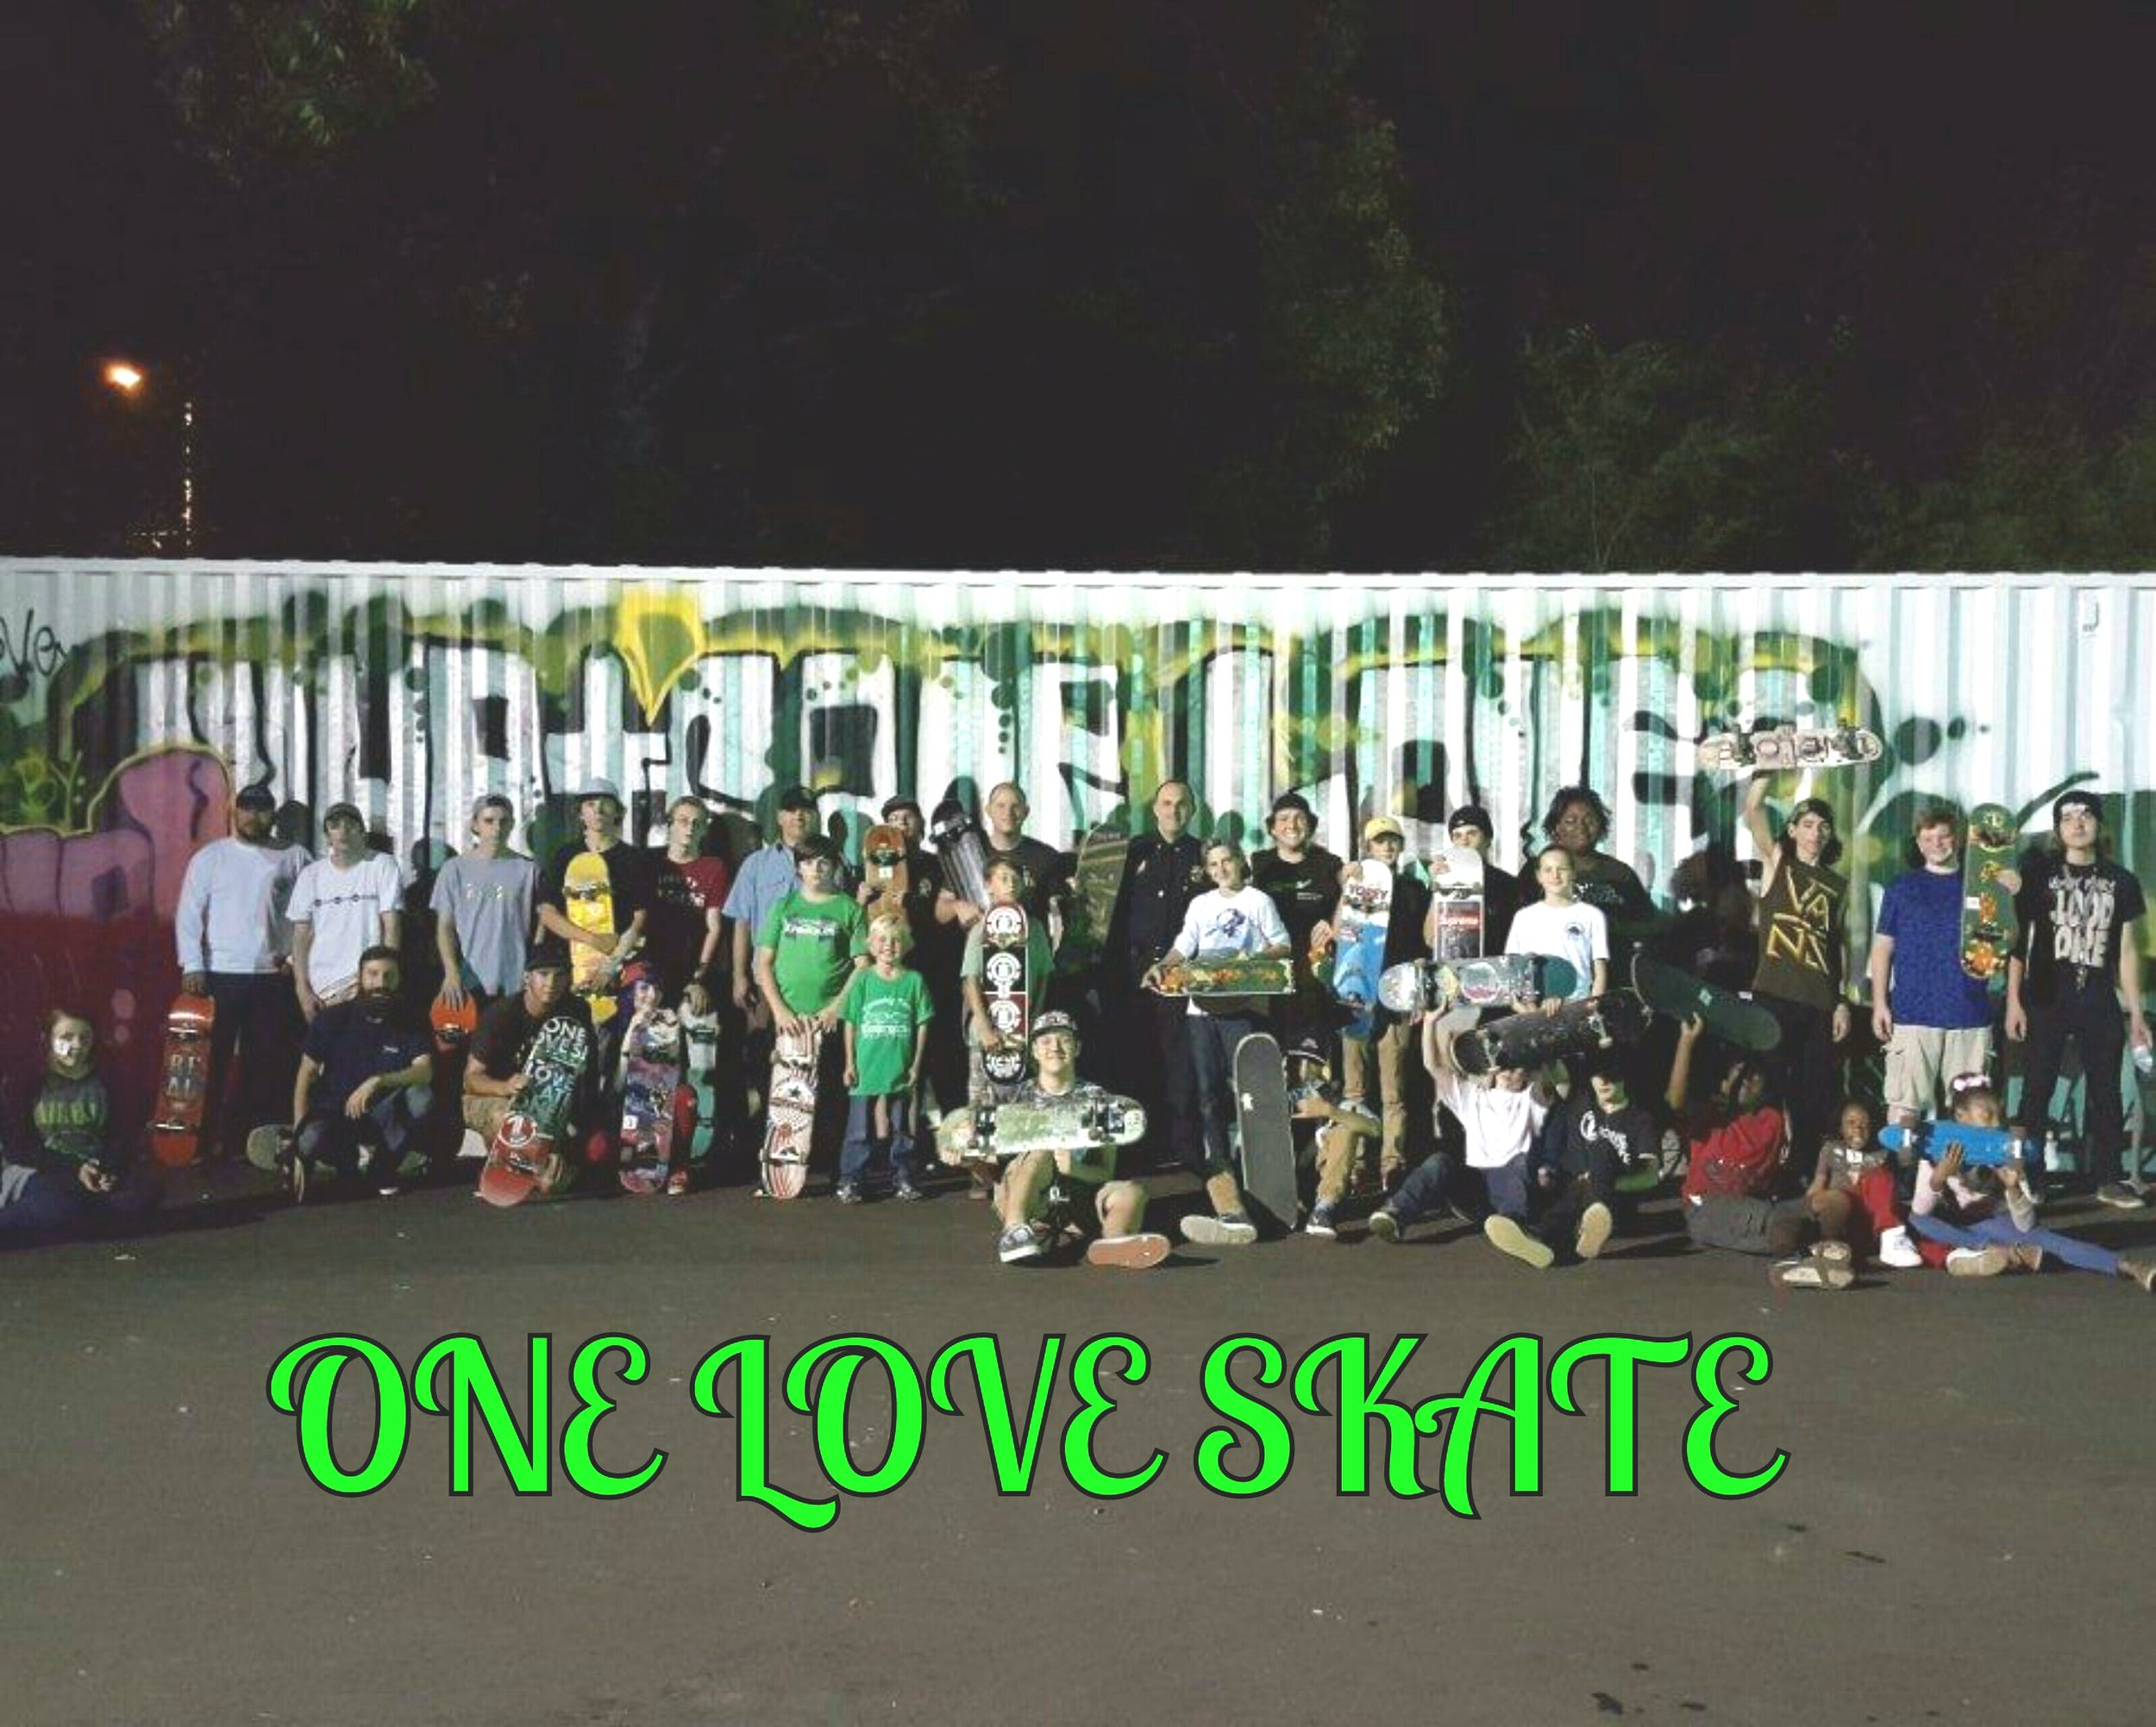 "Here's a throwback picture from 2016 when Brody helped start and lead #OneLoveSkate at Hope Community Church in Shelby, NC. Even though he's in Maui now, 18 students still came to skate at Hope Community Church a couple weeks ago. Thankful to be ""shoulder to shoulder with soldiers for the Kingdom"" who live One Love."